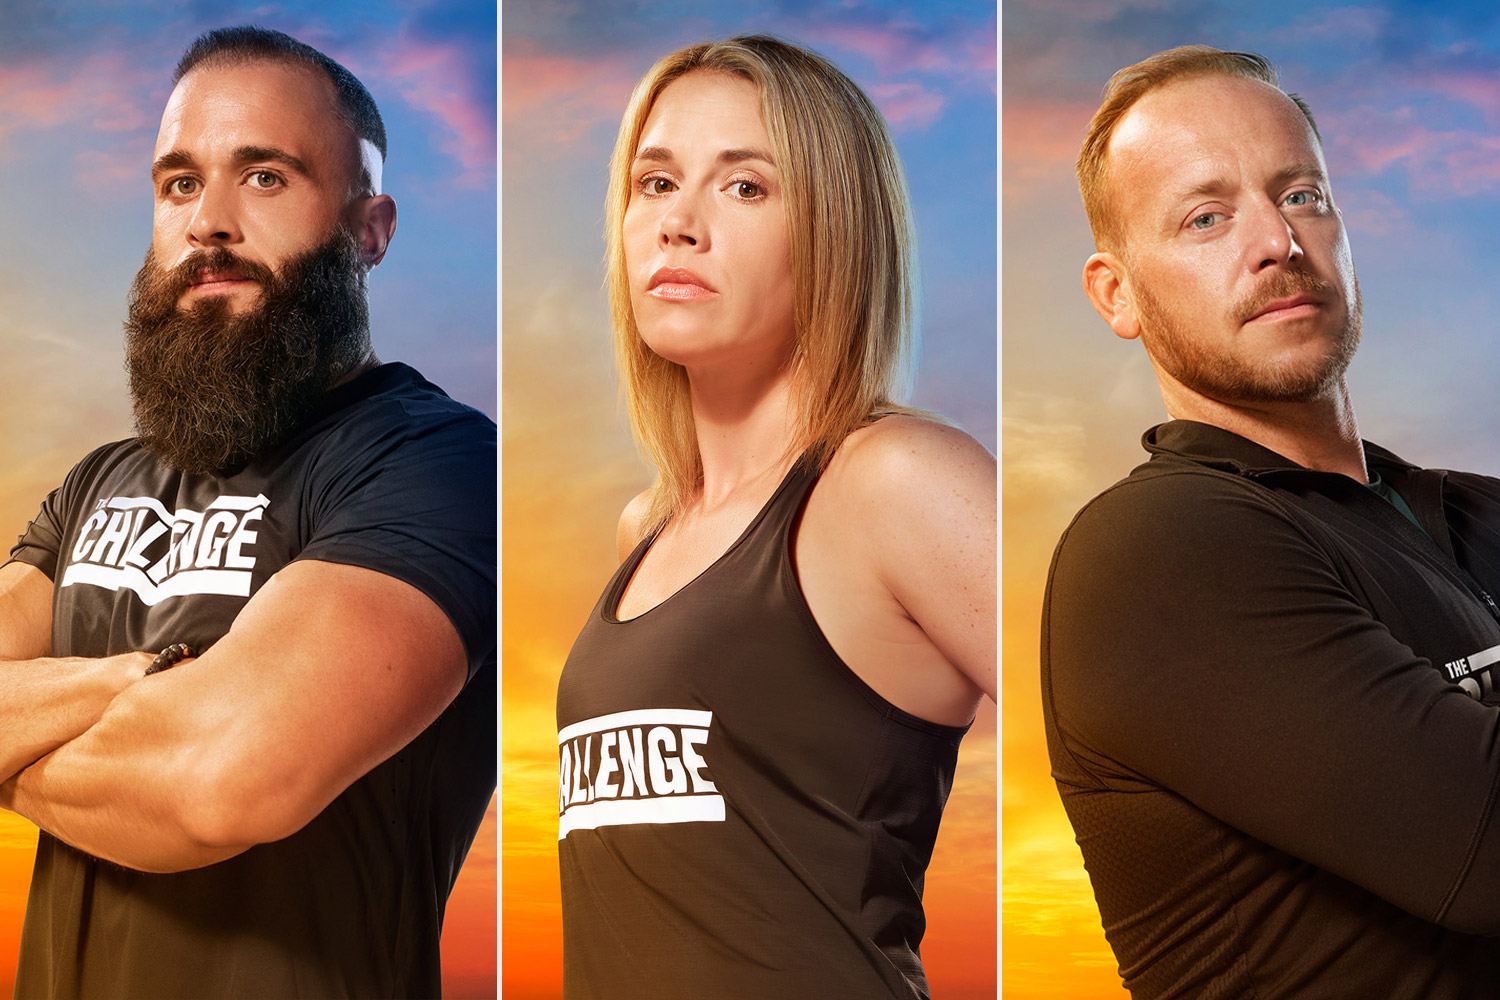 The Challenge All Stars 2